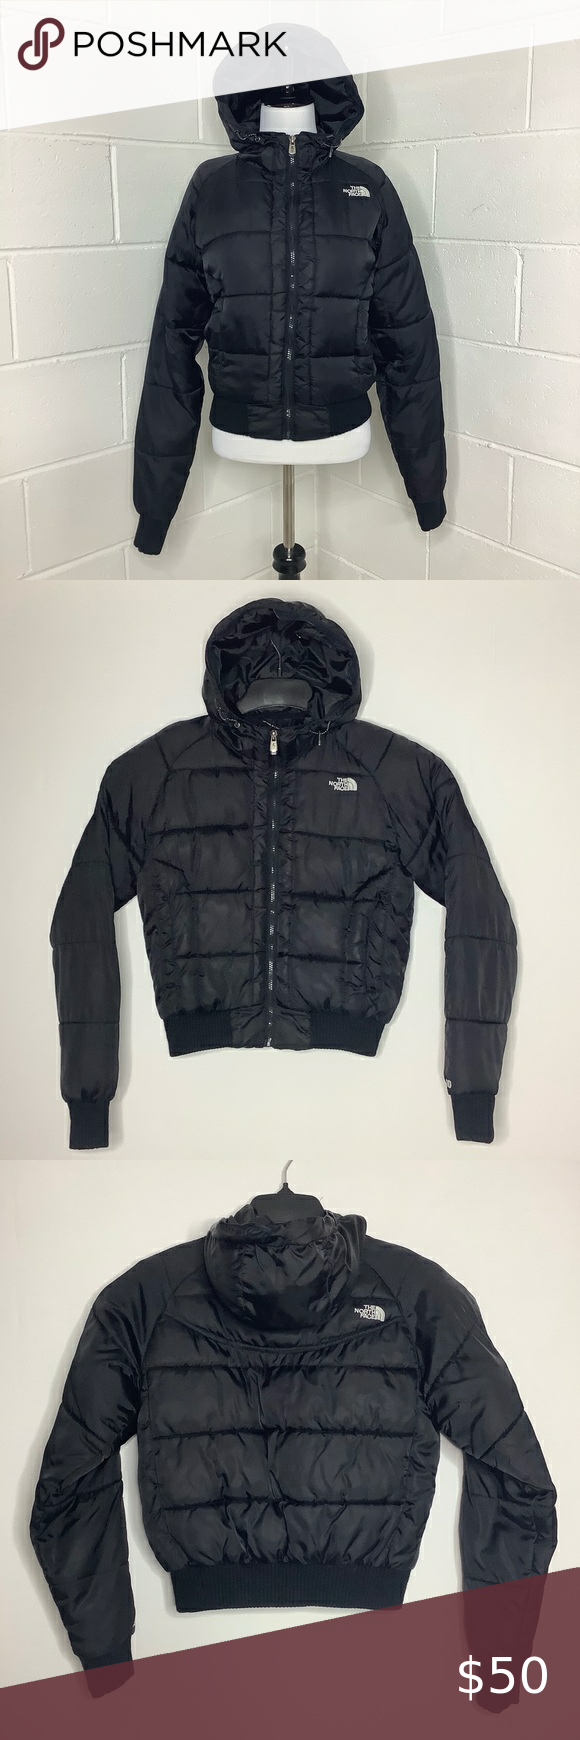 The North Face Xs Goose Down Zip Puffer Jacket Measurements Pictured Good Condition The North Face 550 Goose Down Hoo Jackets Black North Face The North Face [ 1740 x 580 Pixel ]